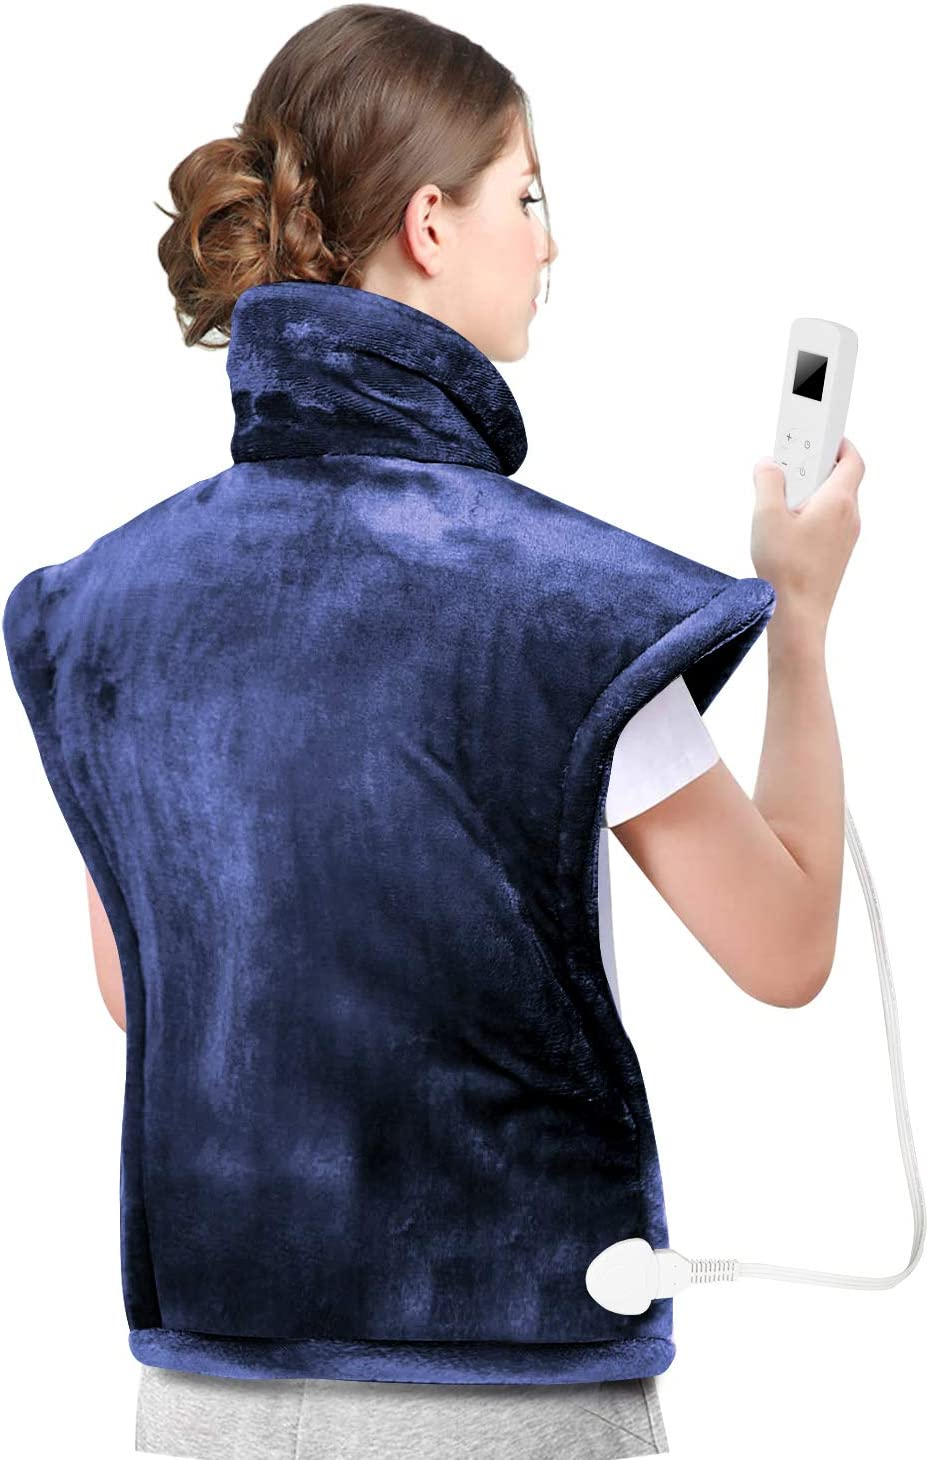 Hangsun Heating Pad for Back Pain and Cramps Relief Electric Heat Pads TP600 Neck and Shoulder Wrap with 6 Temperature and 3 Auto-Off Timer Settings, Overheating Protection - Extra Large 33